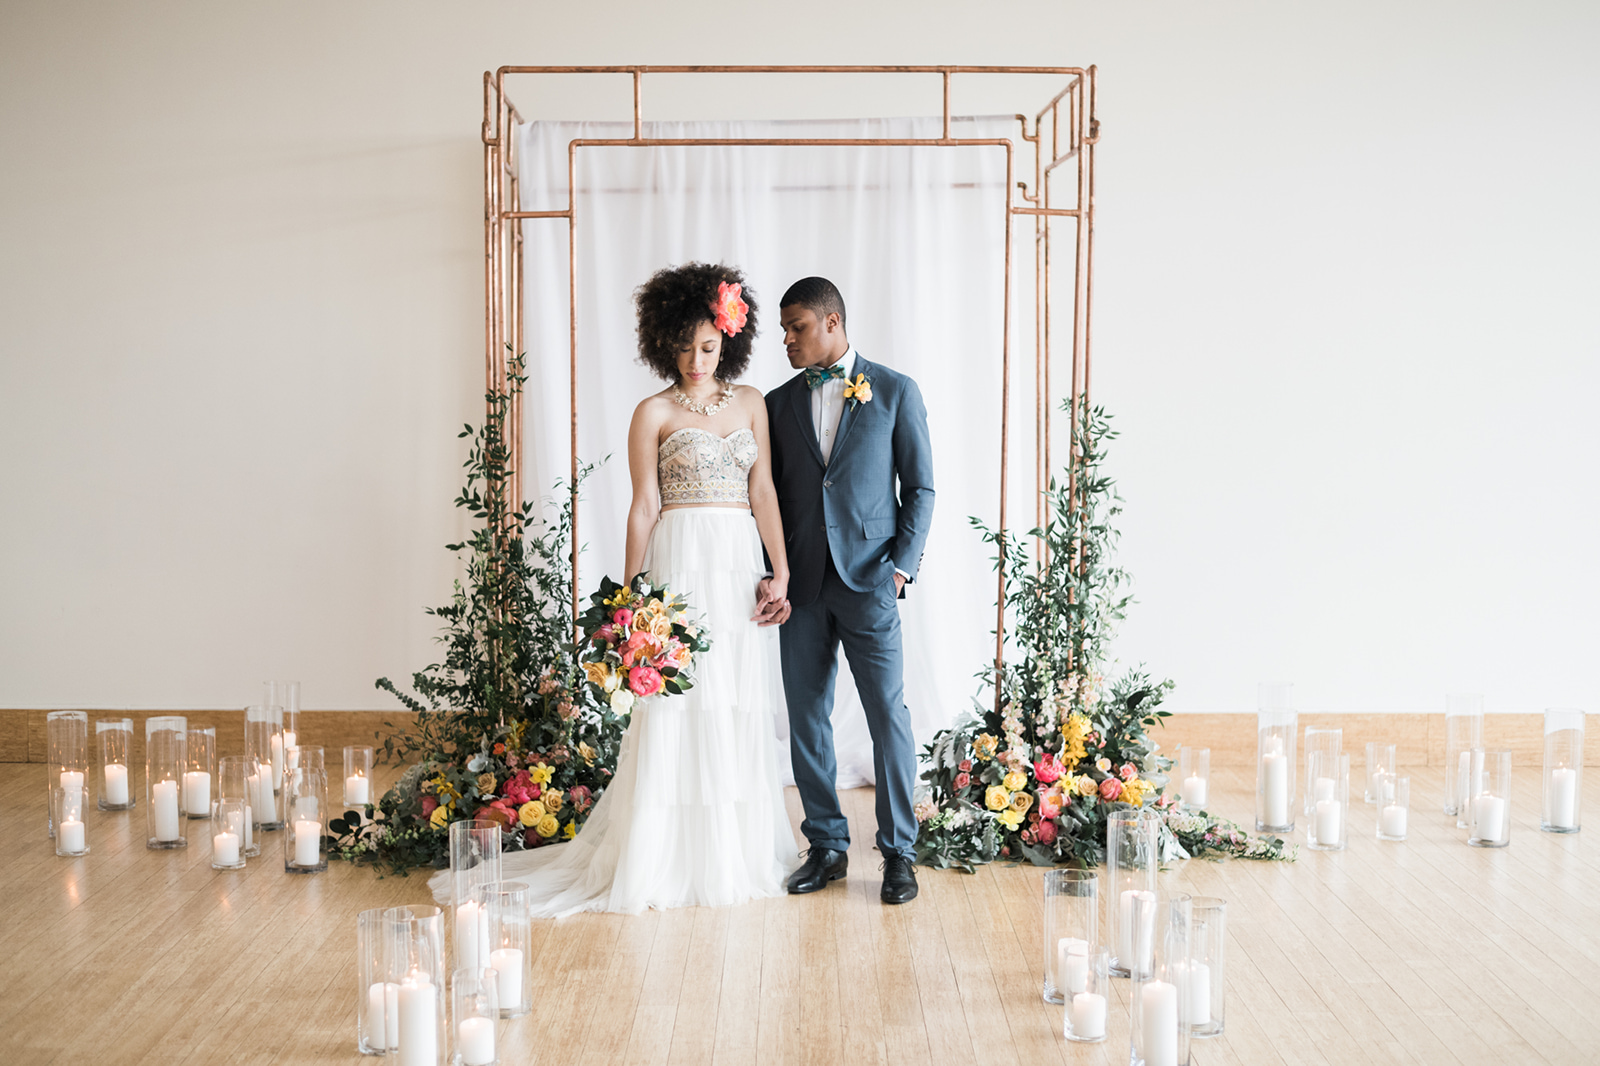 Copper Ceremony Arch with boho floral design at Phipps Conservatory in Pittsburgh.